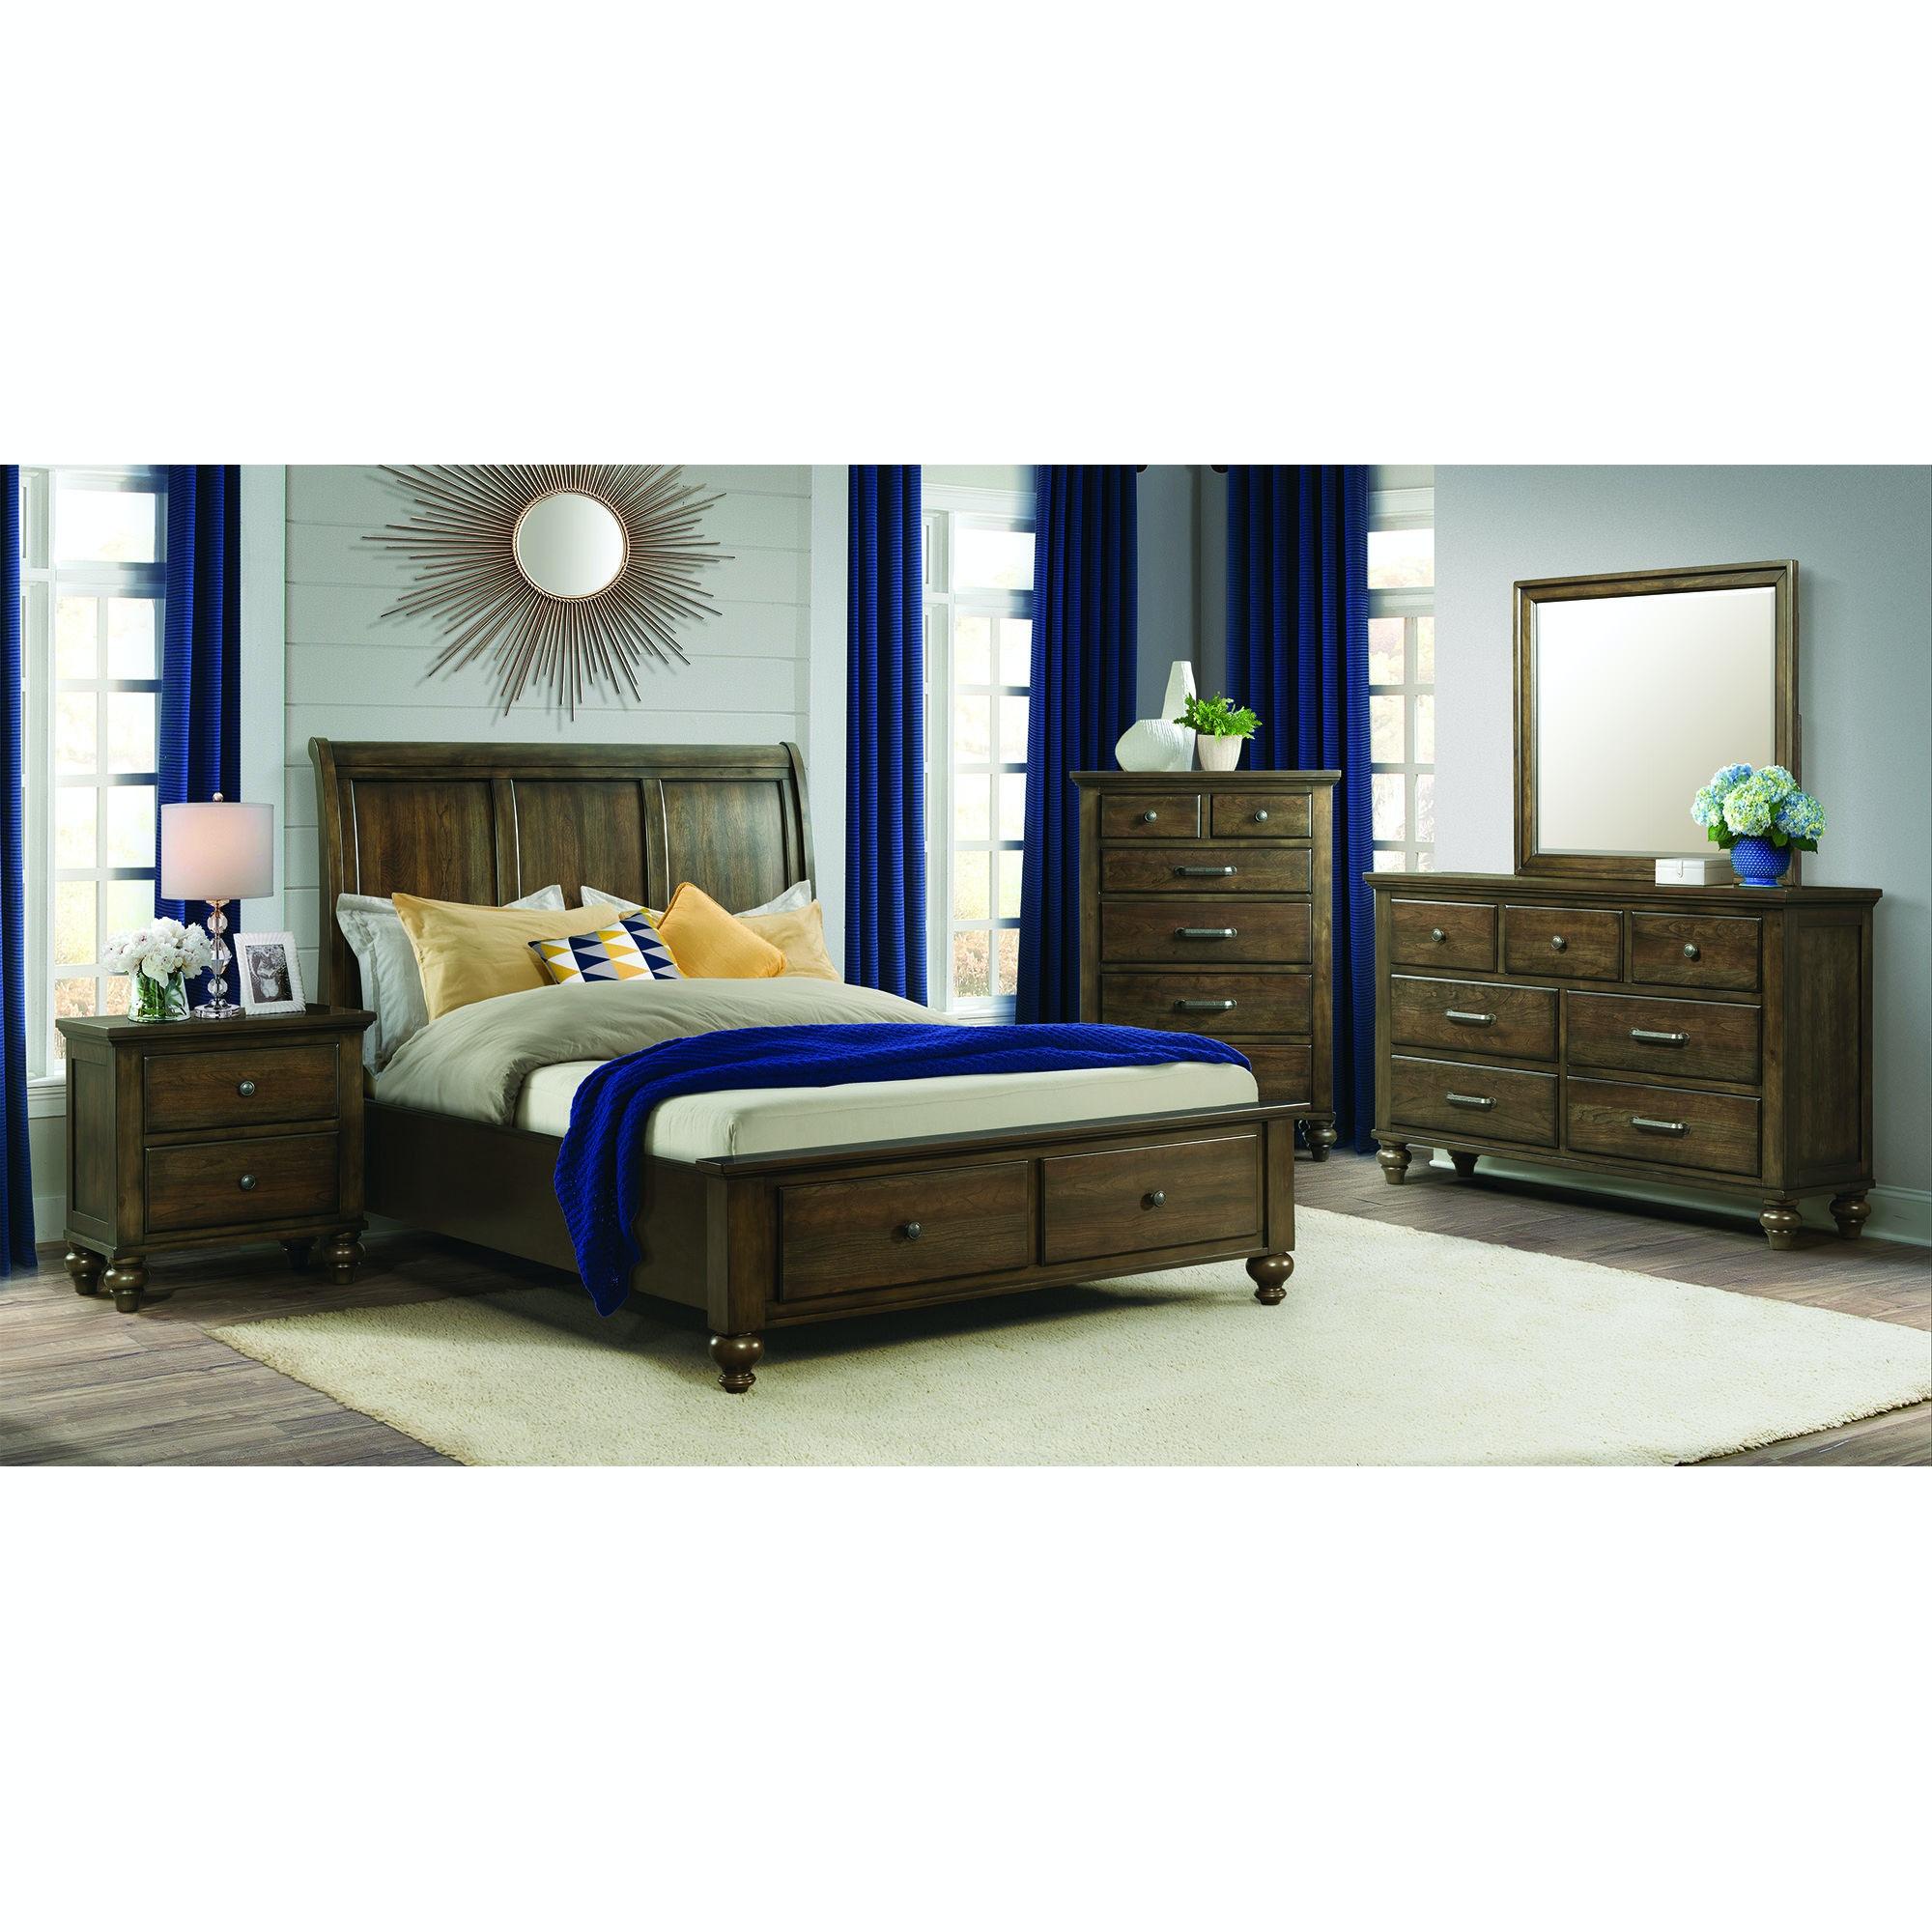 Elements International Chatham Grey Storage Bedroom Including Dresser,  Mirror, Chest, Night Stand U0026